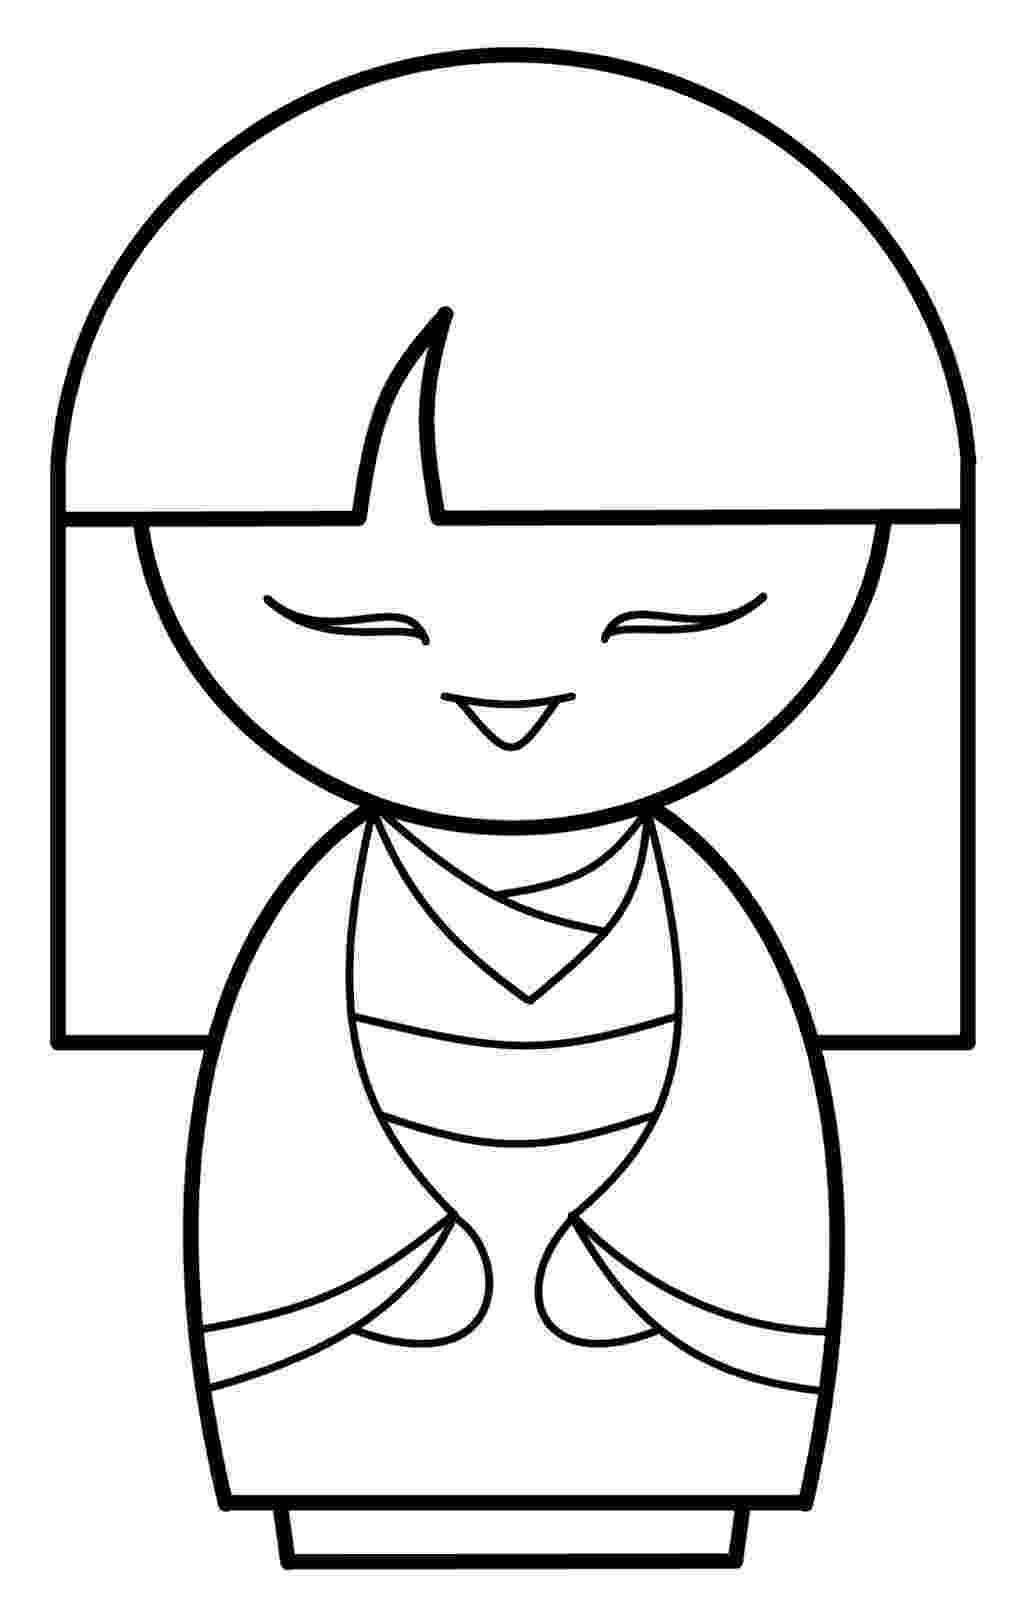 kokeshi dolls coloring pages free printable kokeshi doll coloring page paper and the pages kokeshi dolls coloring